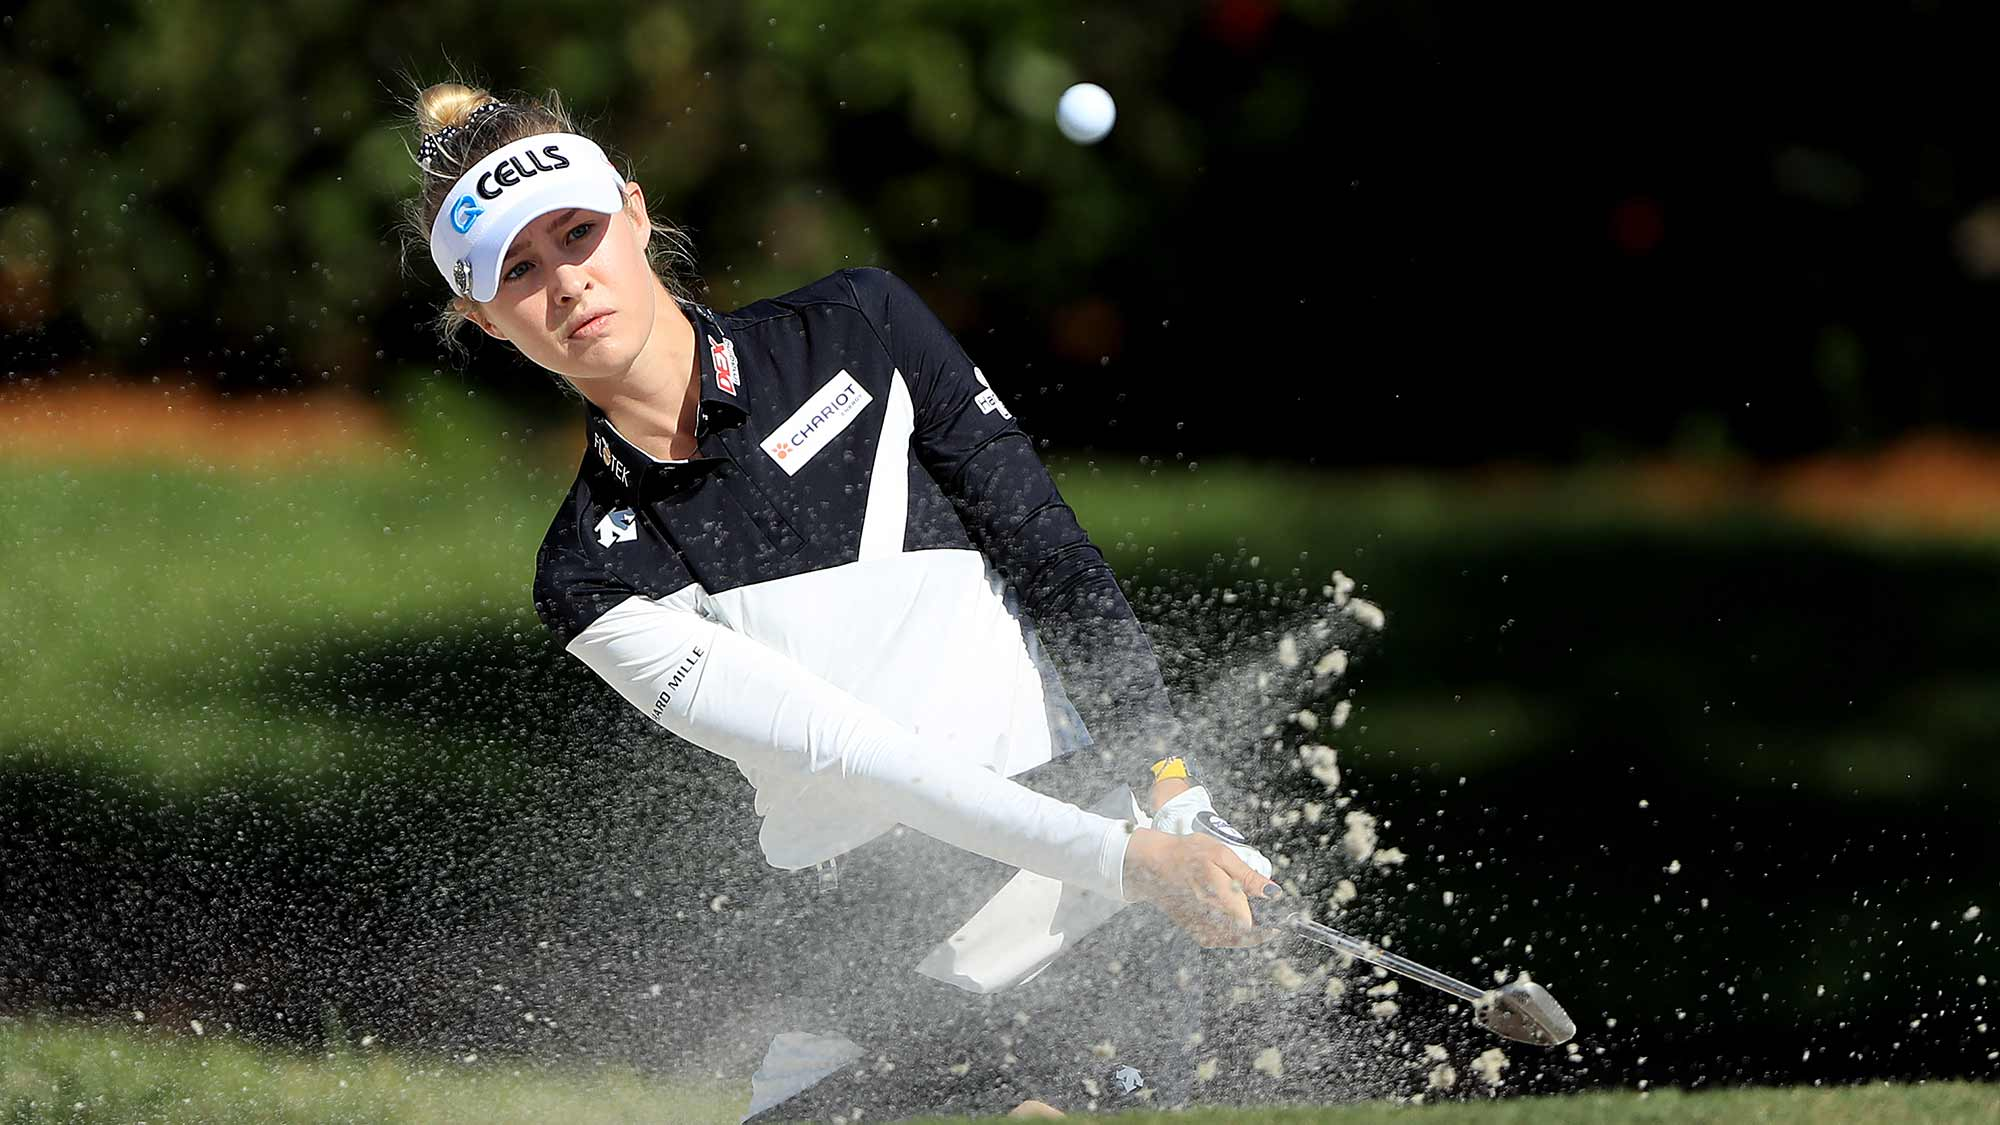 Nelly Korda of the United States plays a shot from a bunker on the sixth hole during the first round of the CME Group Tour Championship at Tiburon Golf Club on November 21, 2019 in Naples, Florida